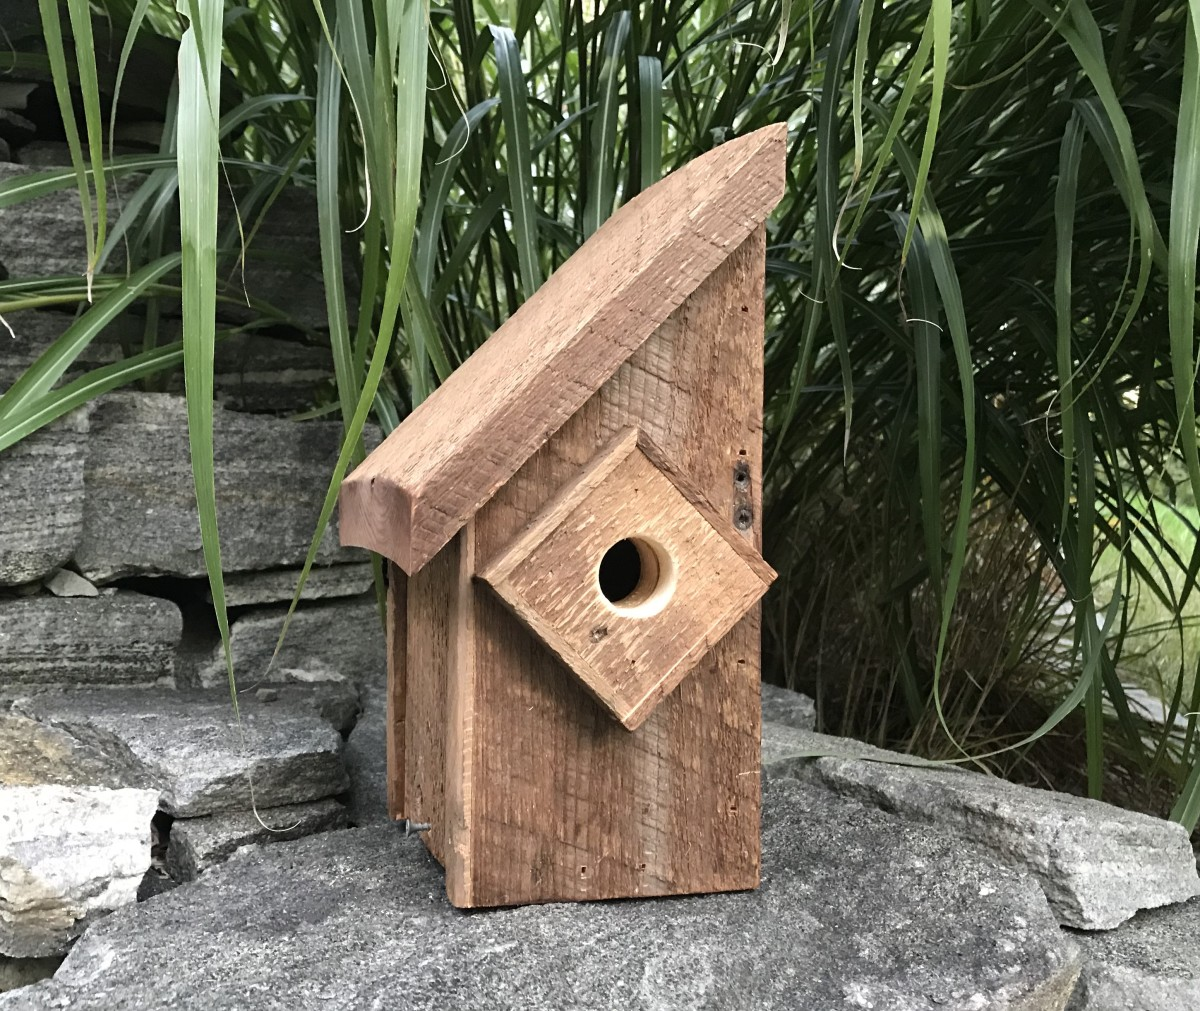 This barn wood birdhouse is made for the birds!